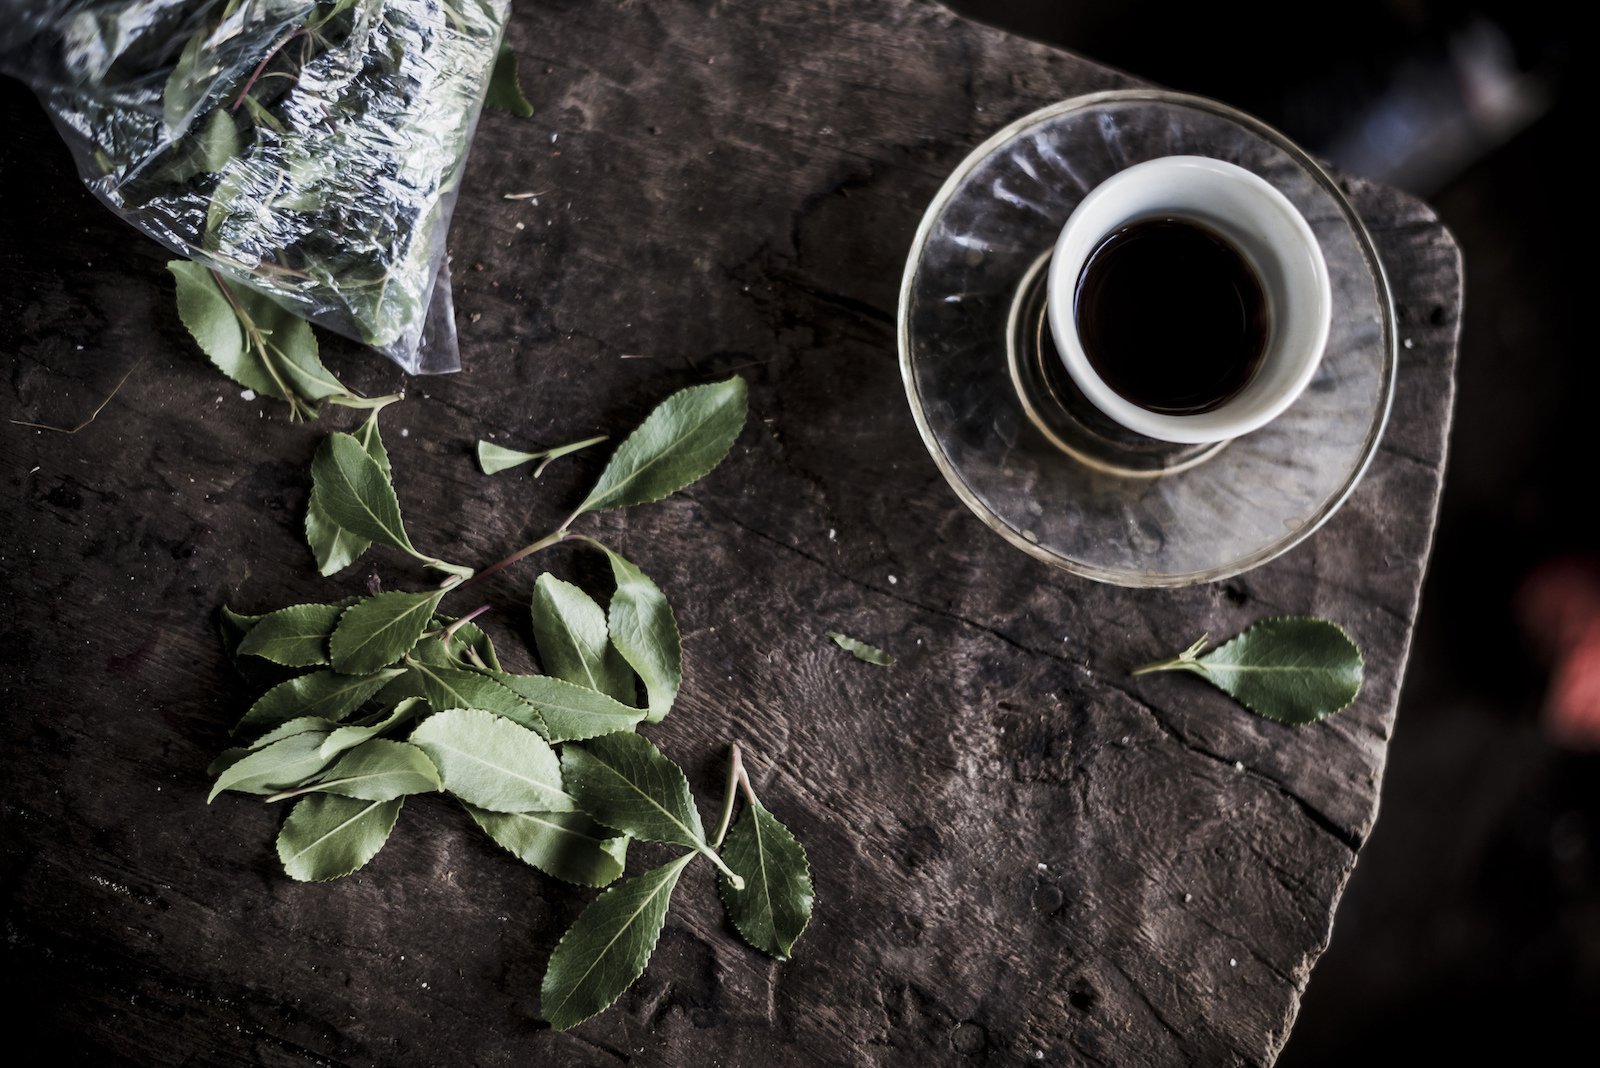 Khat leaves and coffee- legal stimulants